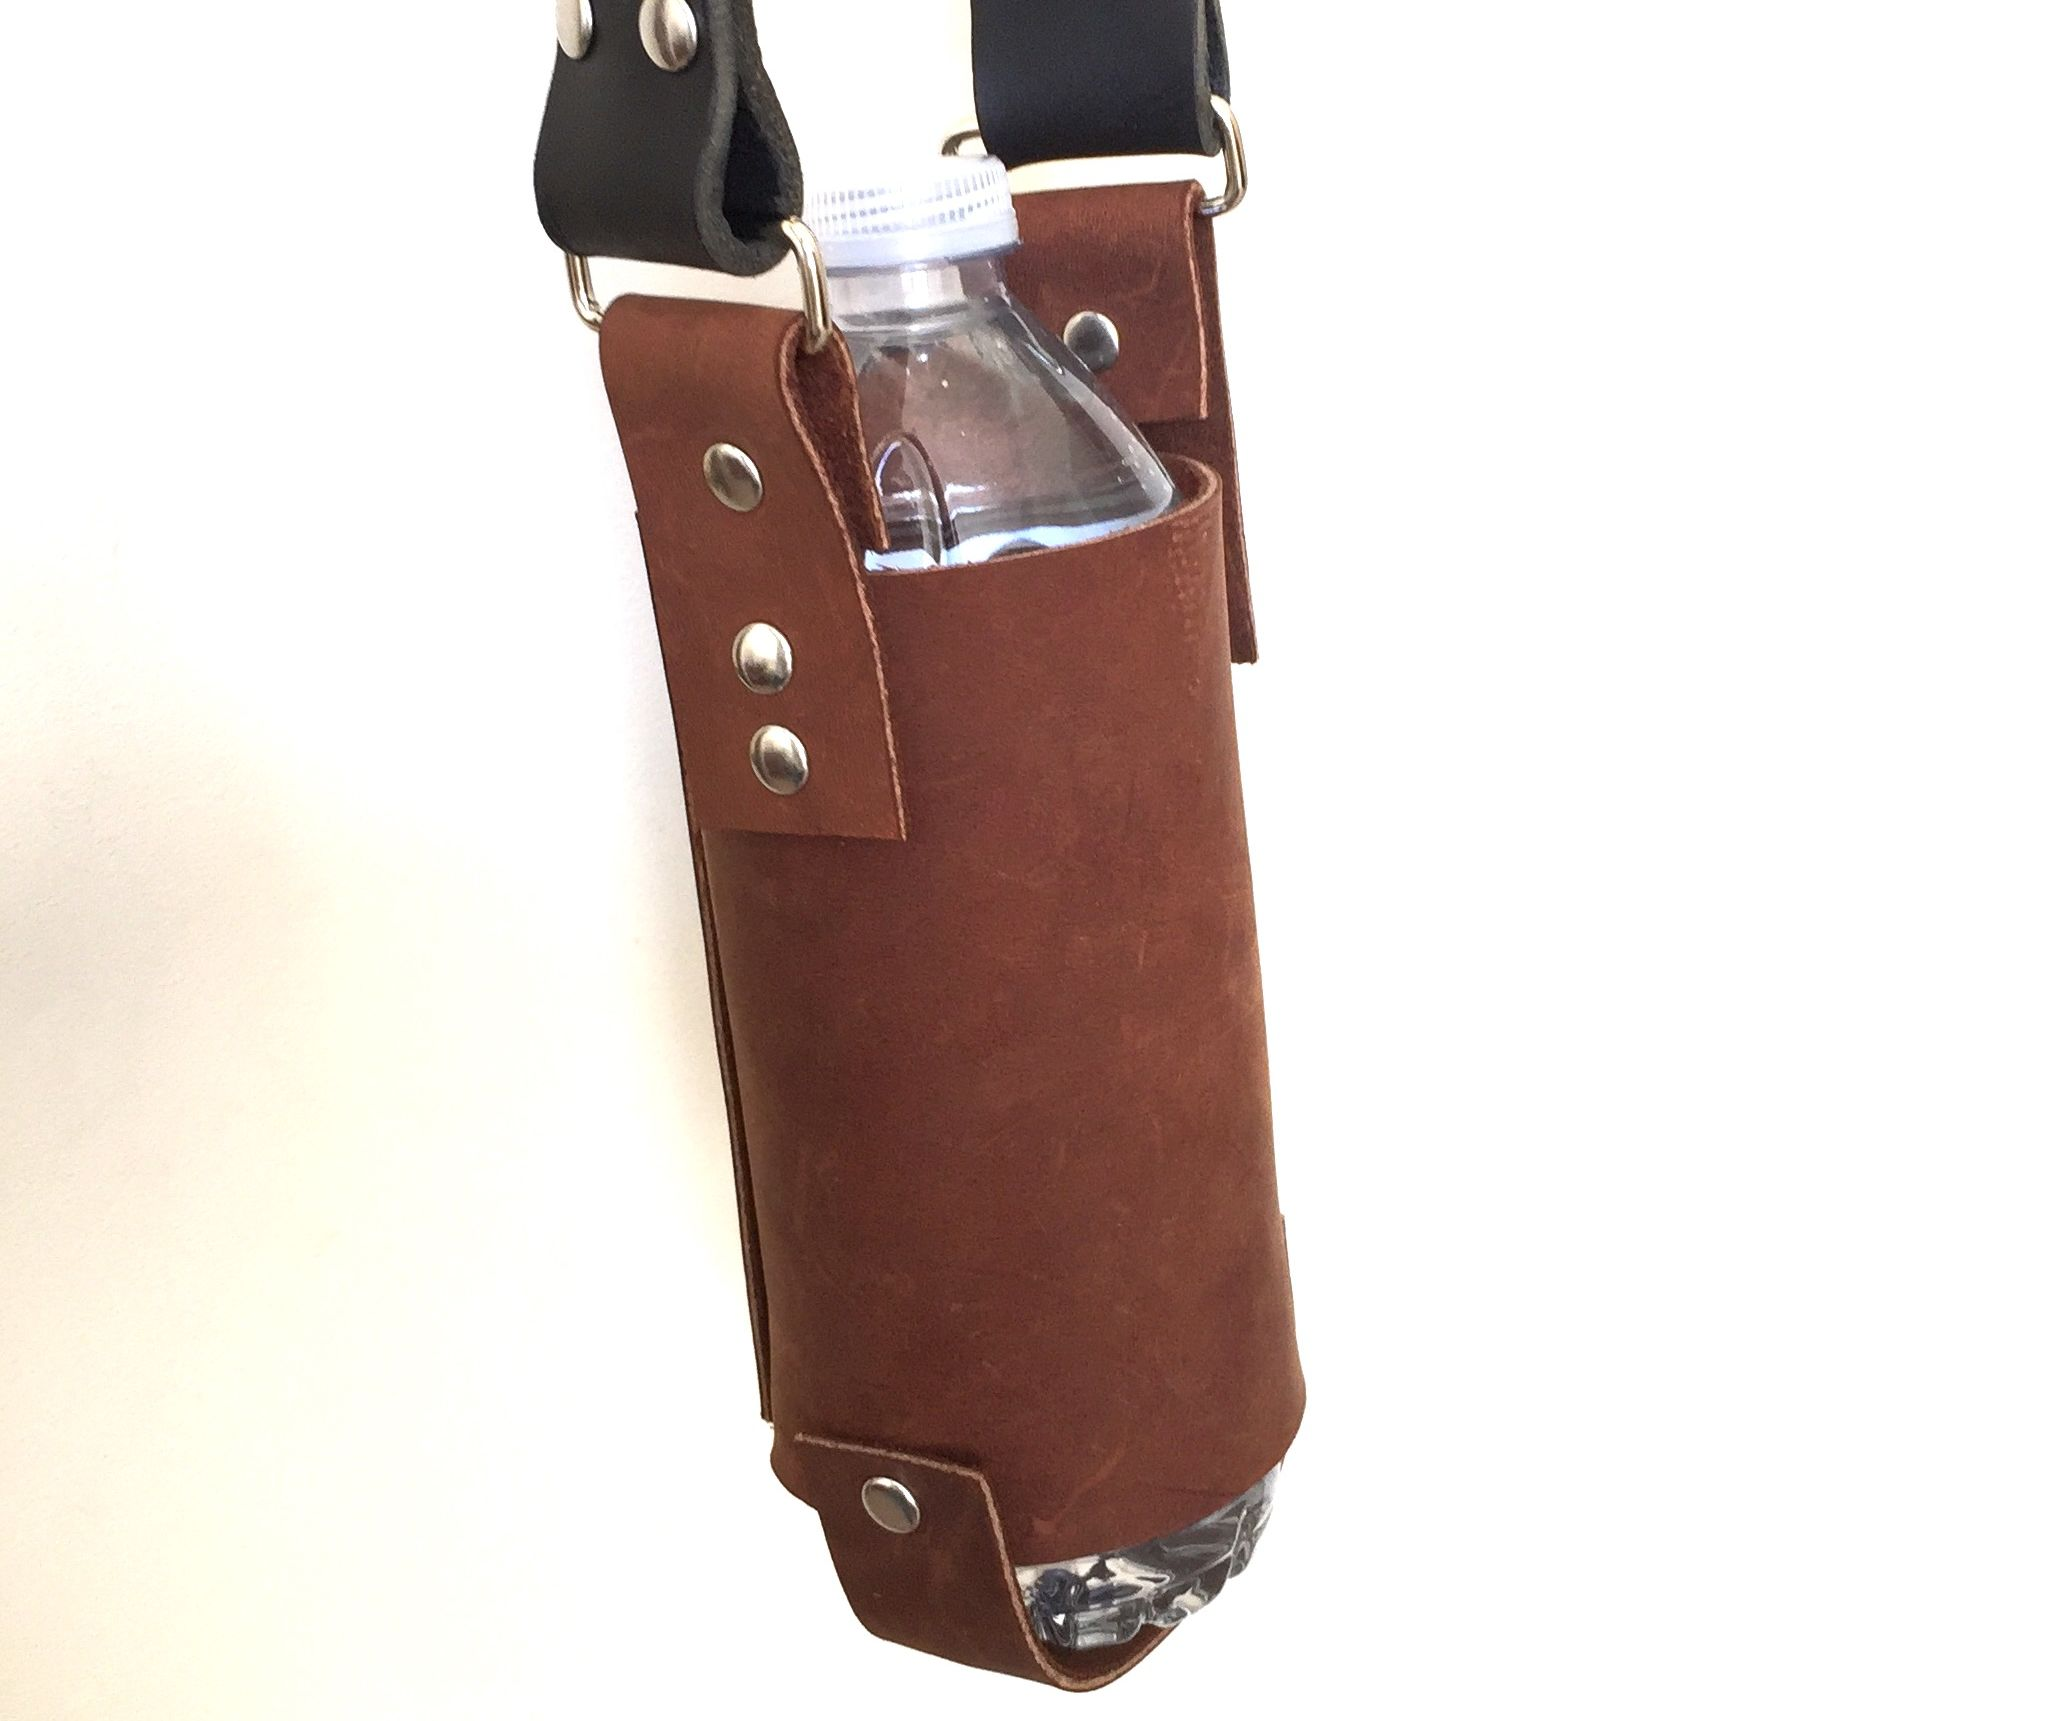 How to Make a Leather Water Bottle Holder / Holster